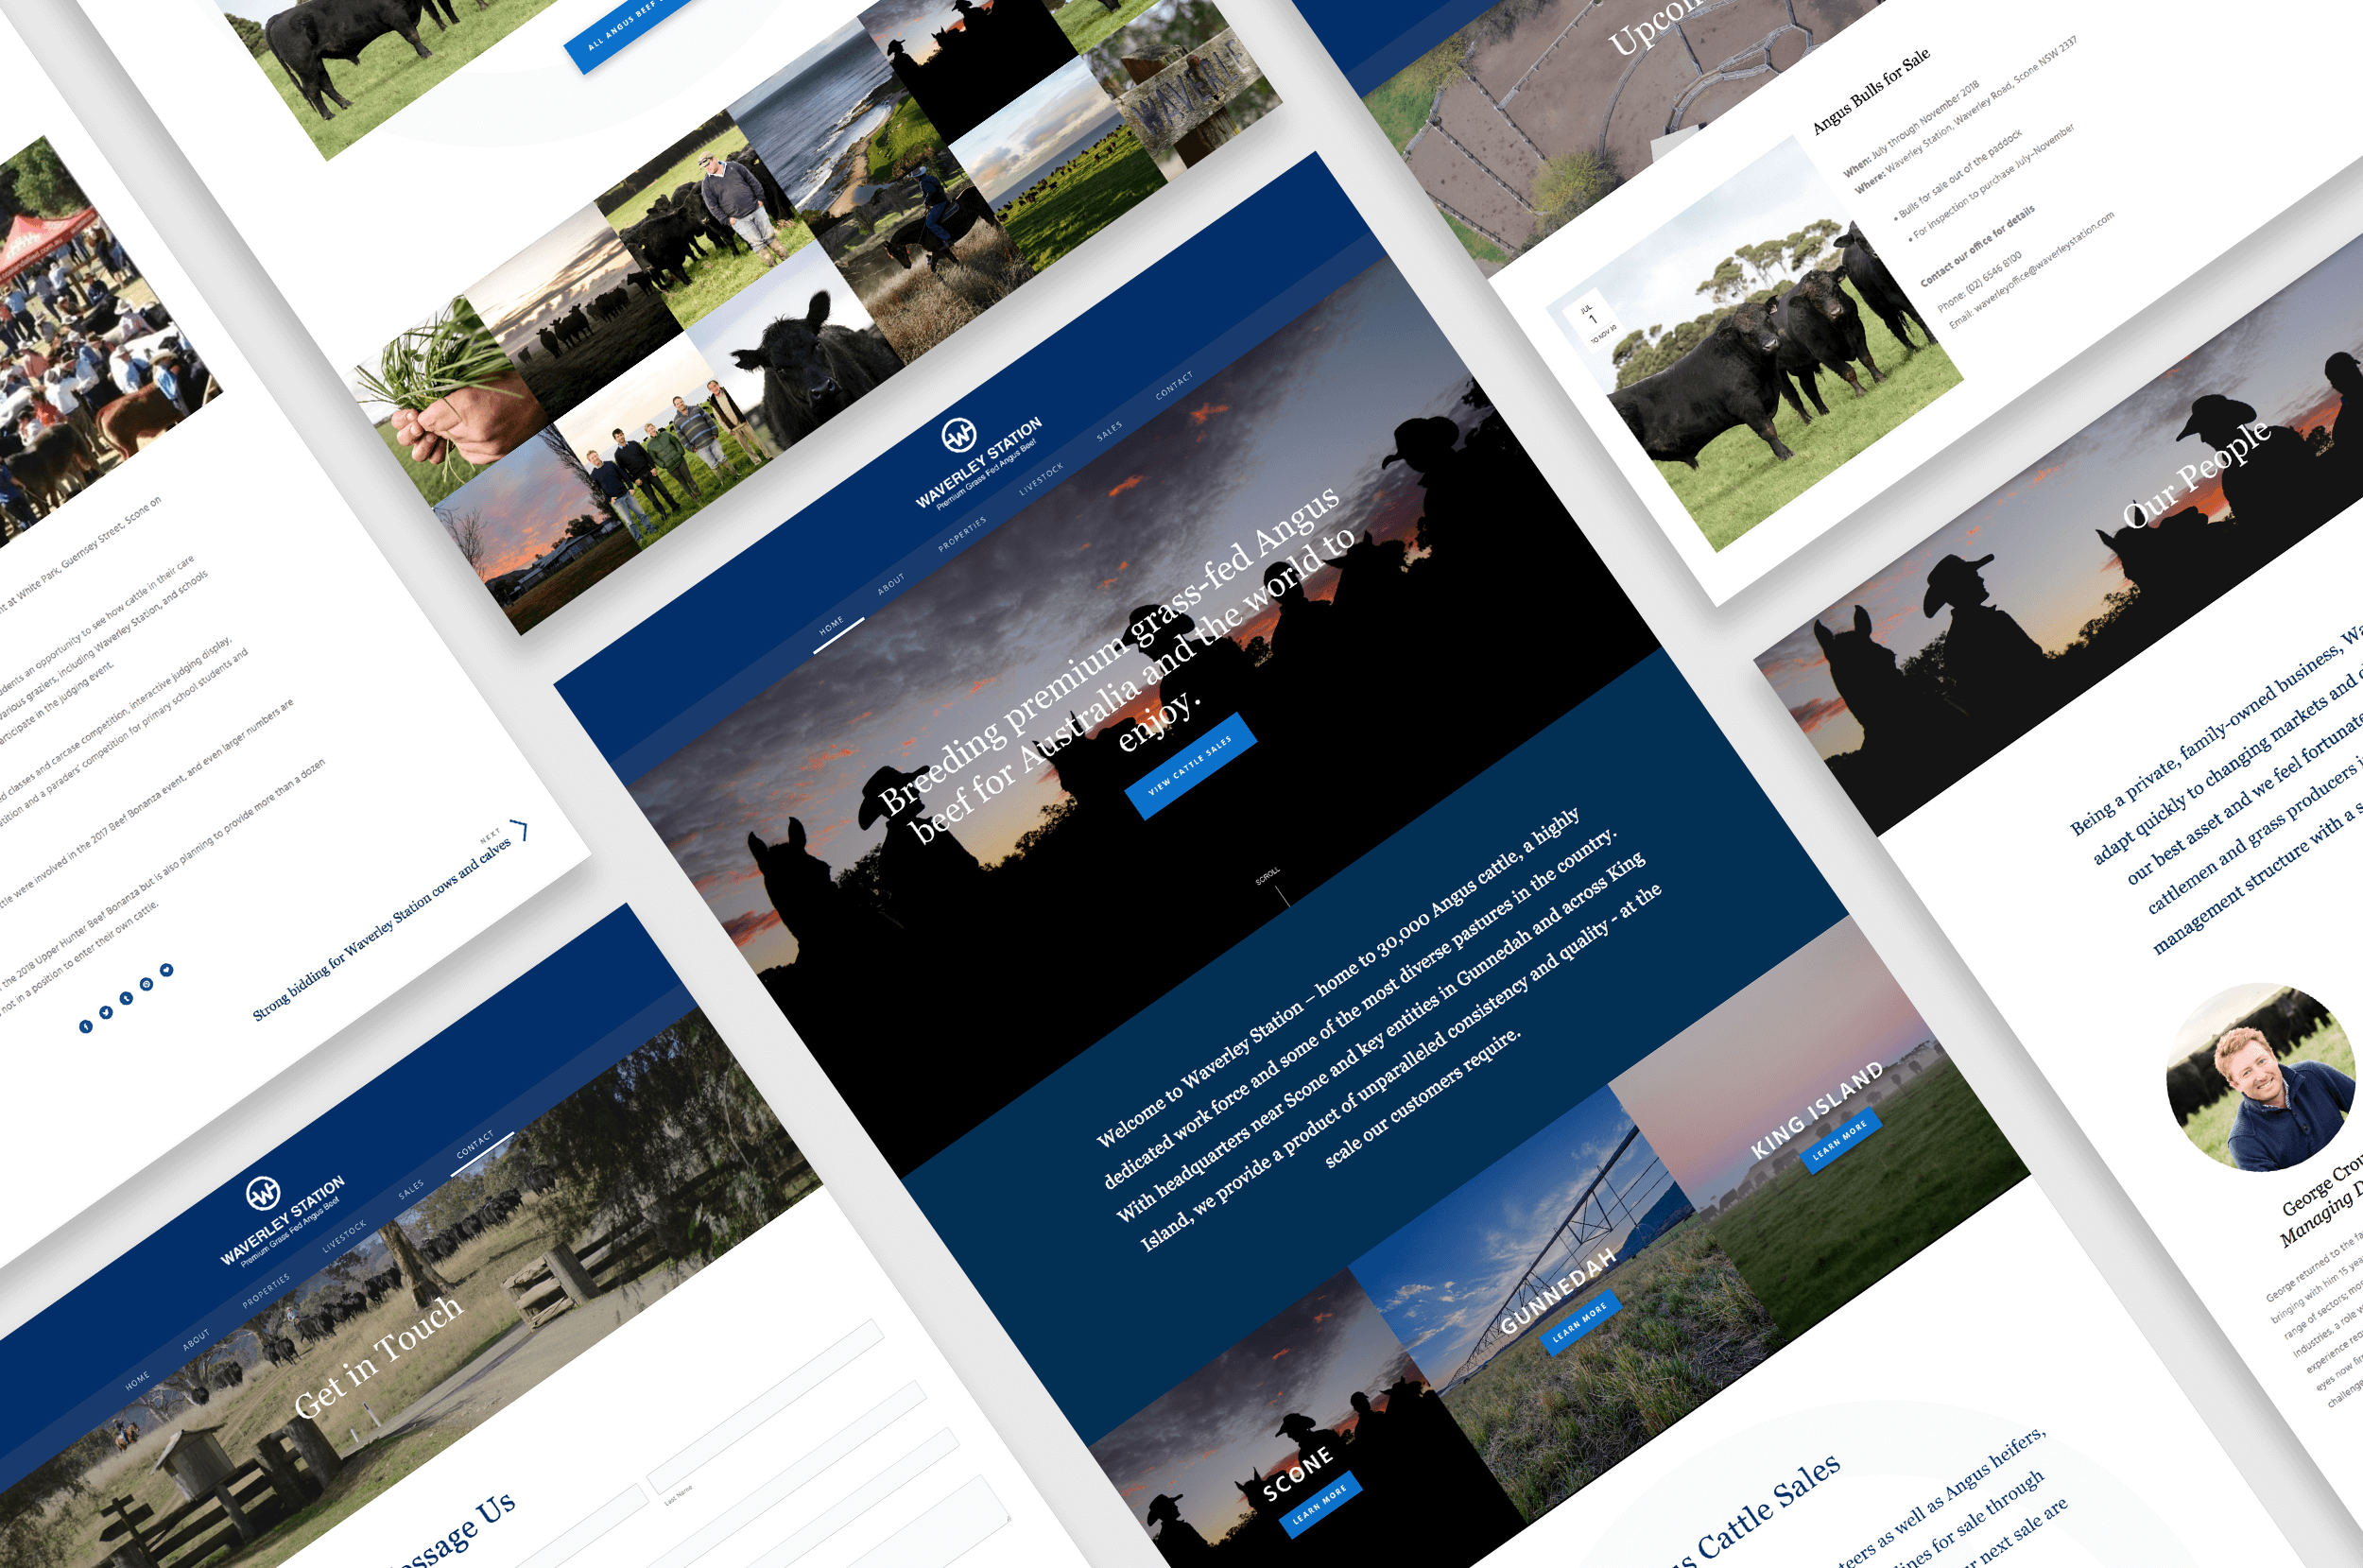 responsive-website-design-melbourne-waverley-station.png